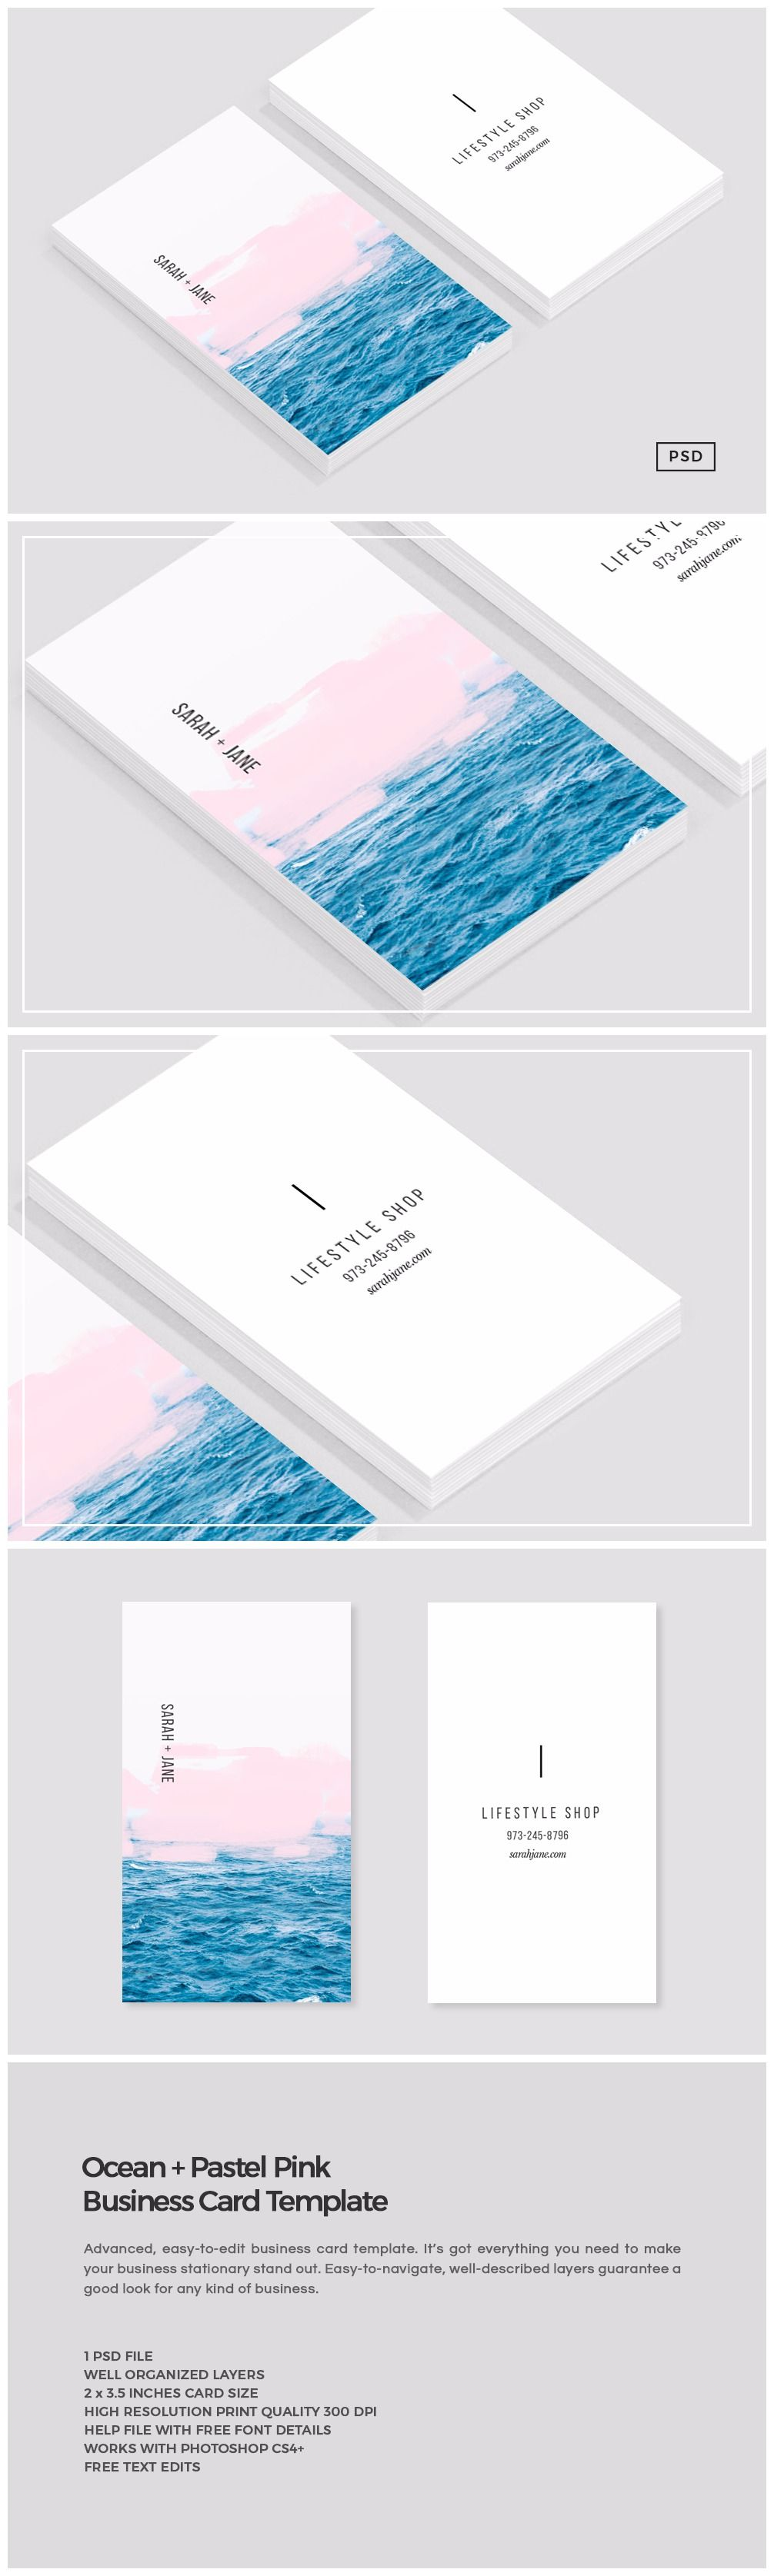 ocean pink business card template by the design label on